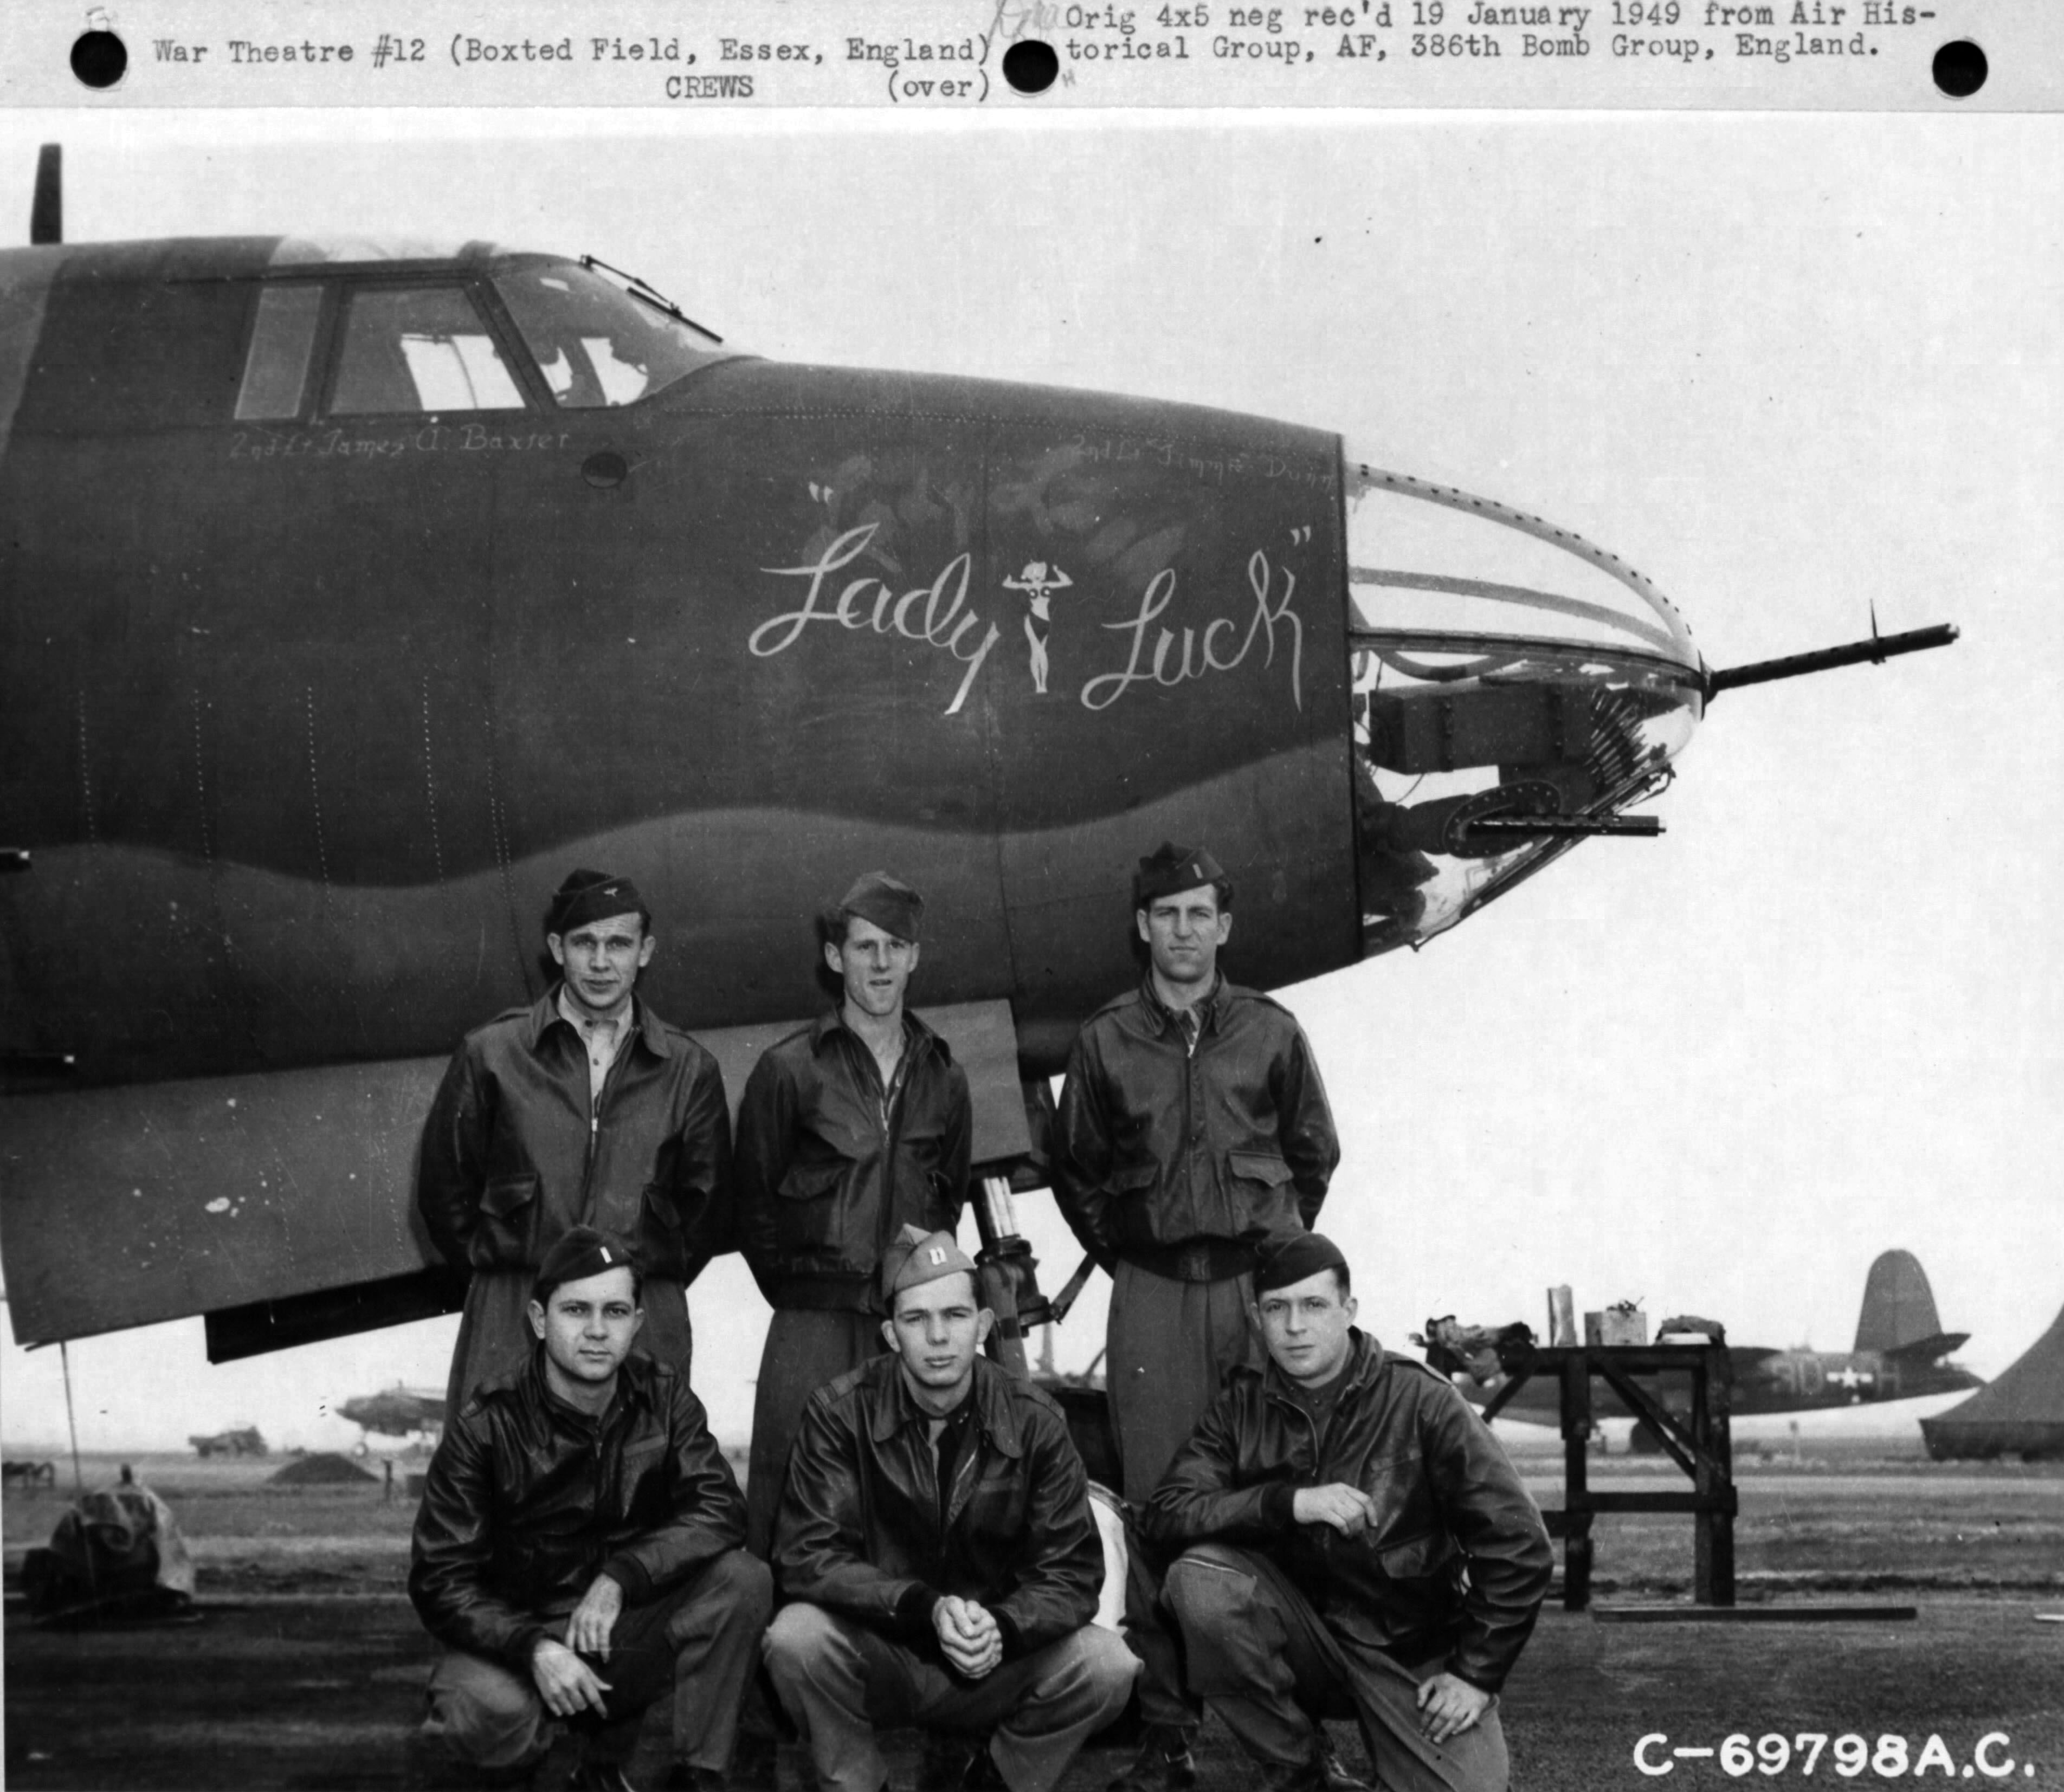 USAAF 41 34947 B 26C Marauder 386BG554BS RUK Lady Luck with crew at their base in Boxted Essex England 12 Sep 1943 01